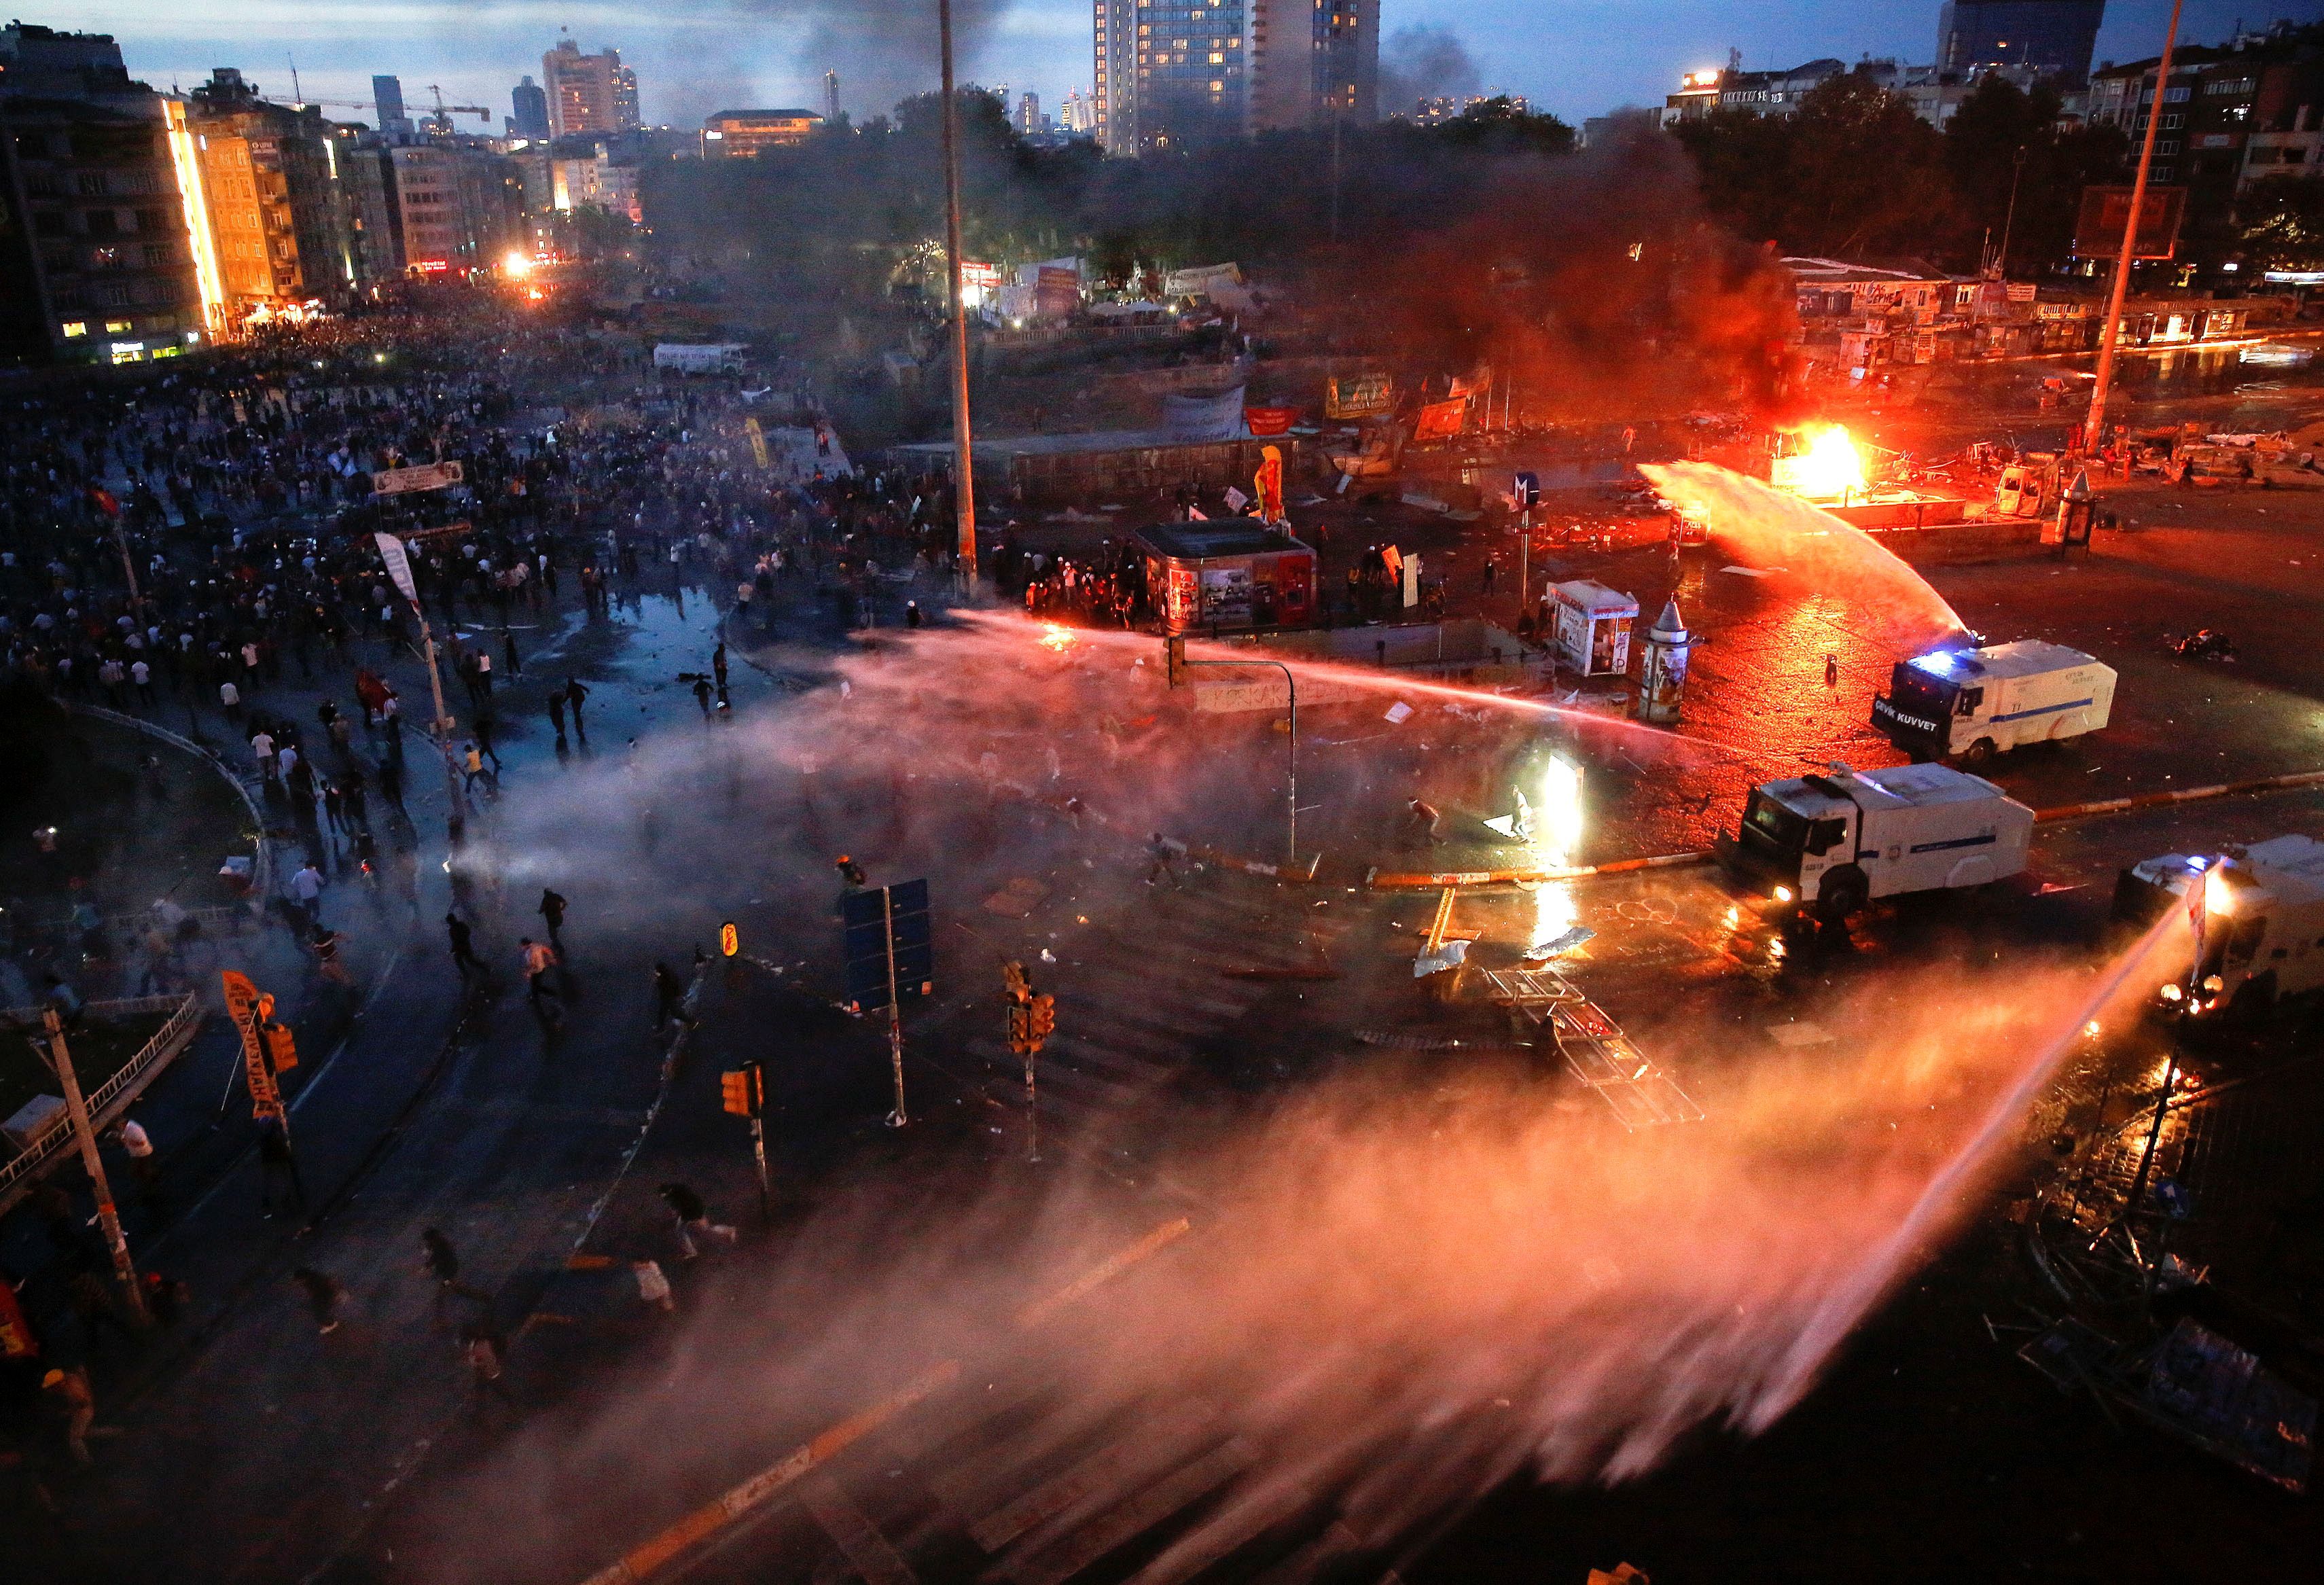 FILE PHOTO: Turkish police use water cannons to disperse protesters at Taksim square in Istanbul, Turkey, June 11, 2013. REUTERS/Yannis Behrakis/